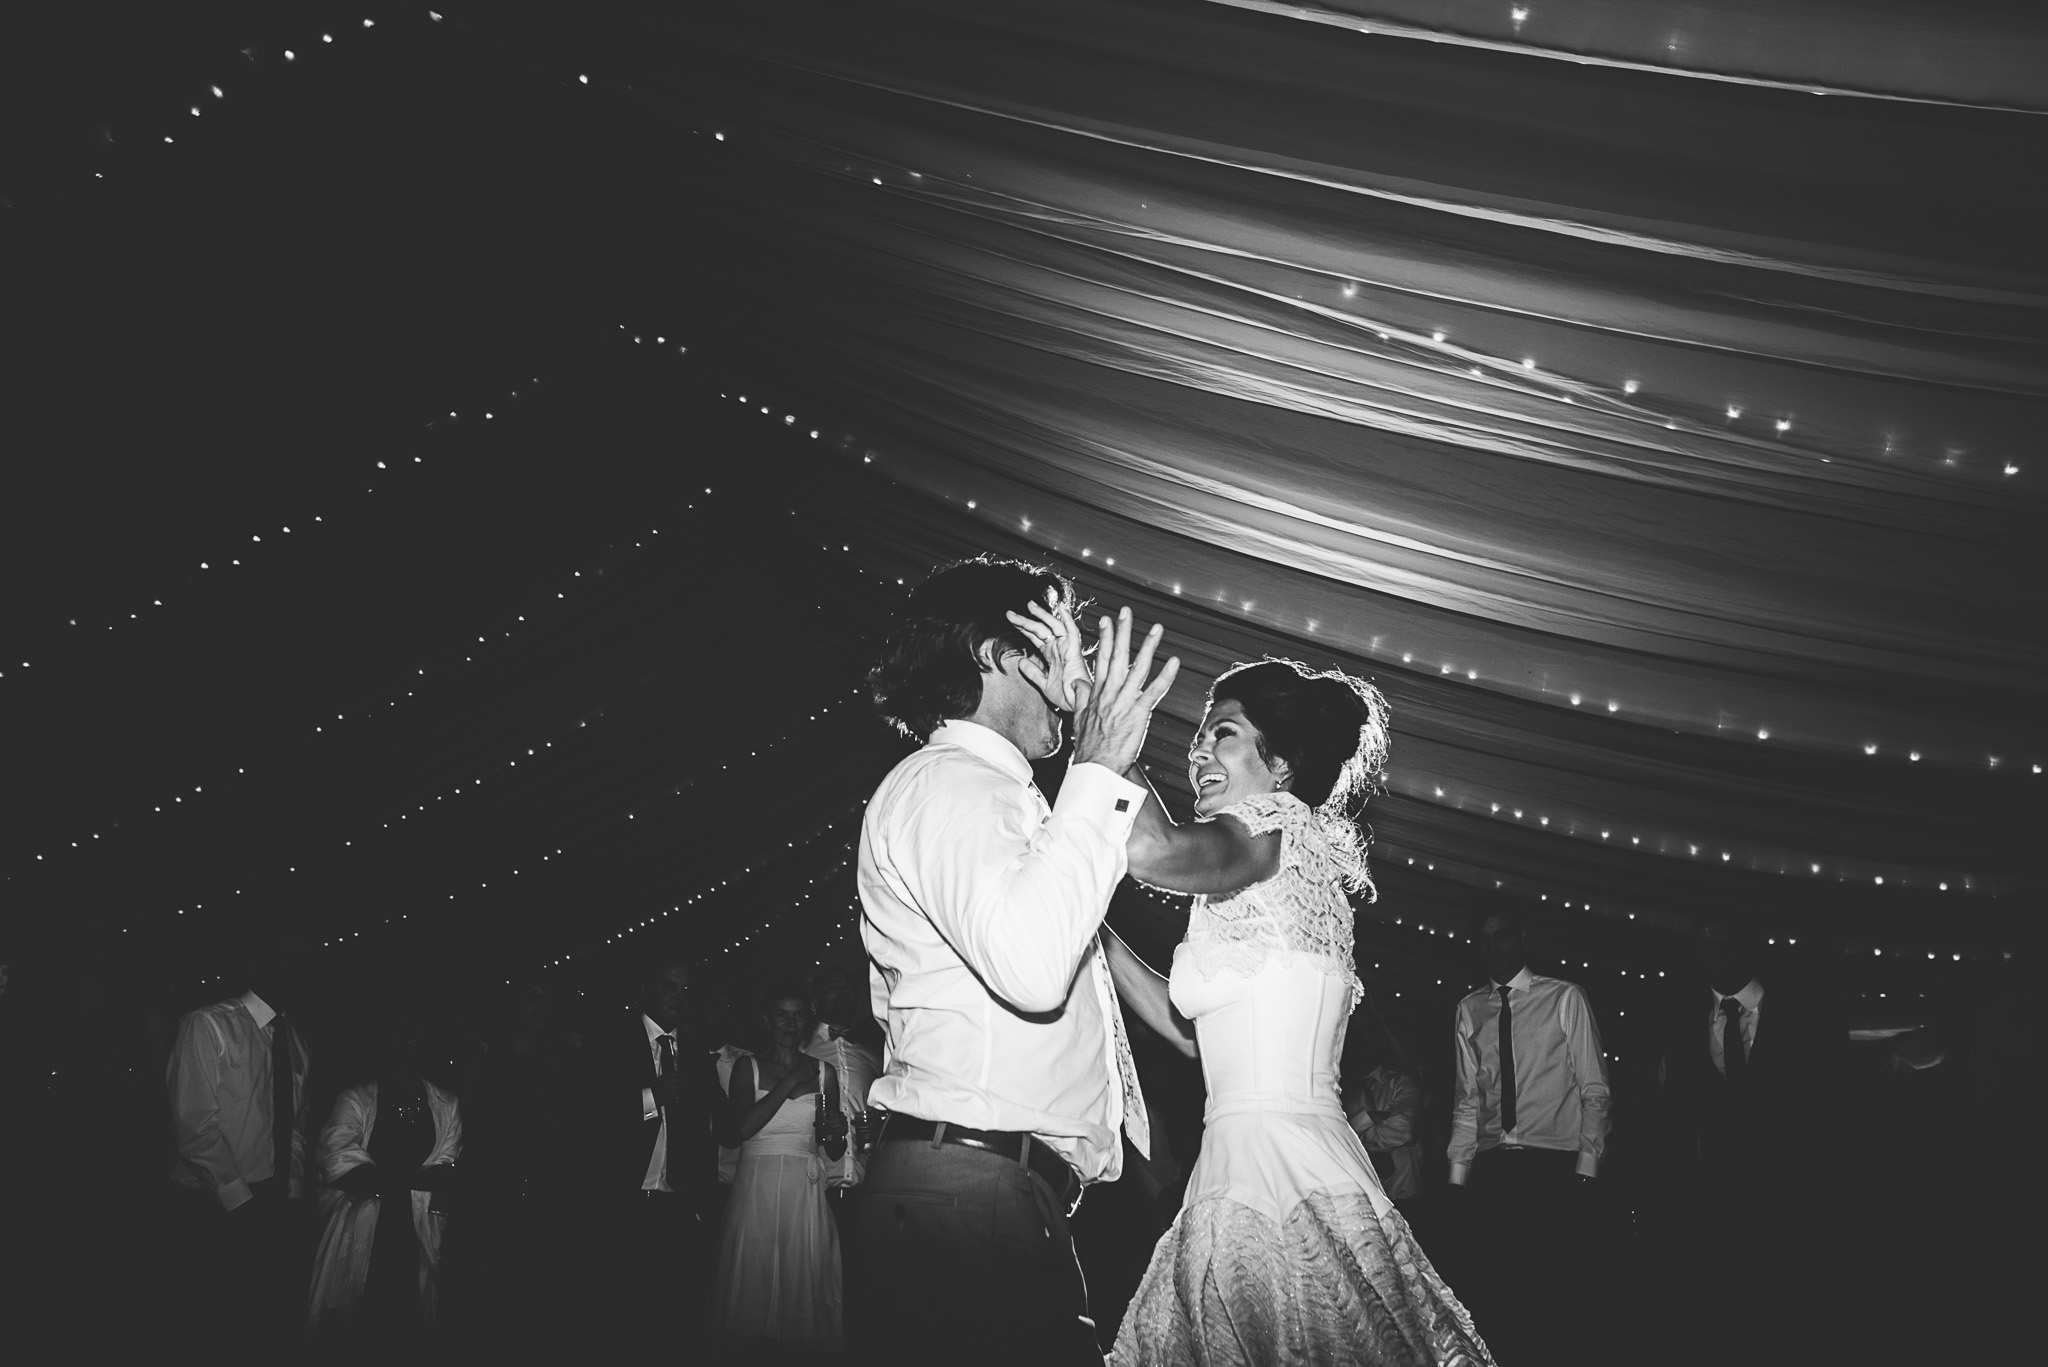 Lara & Jack Wedding 220815 by Barney Walters_1058_BW2_1075